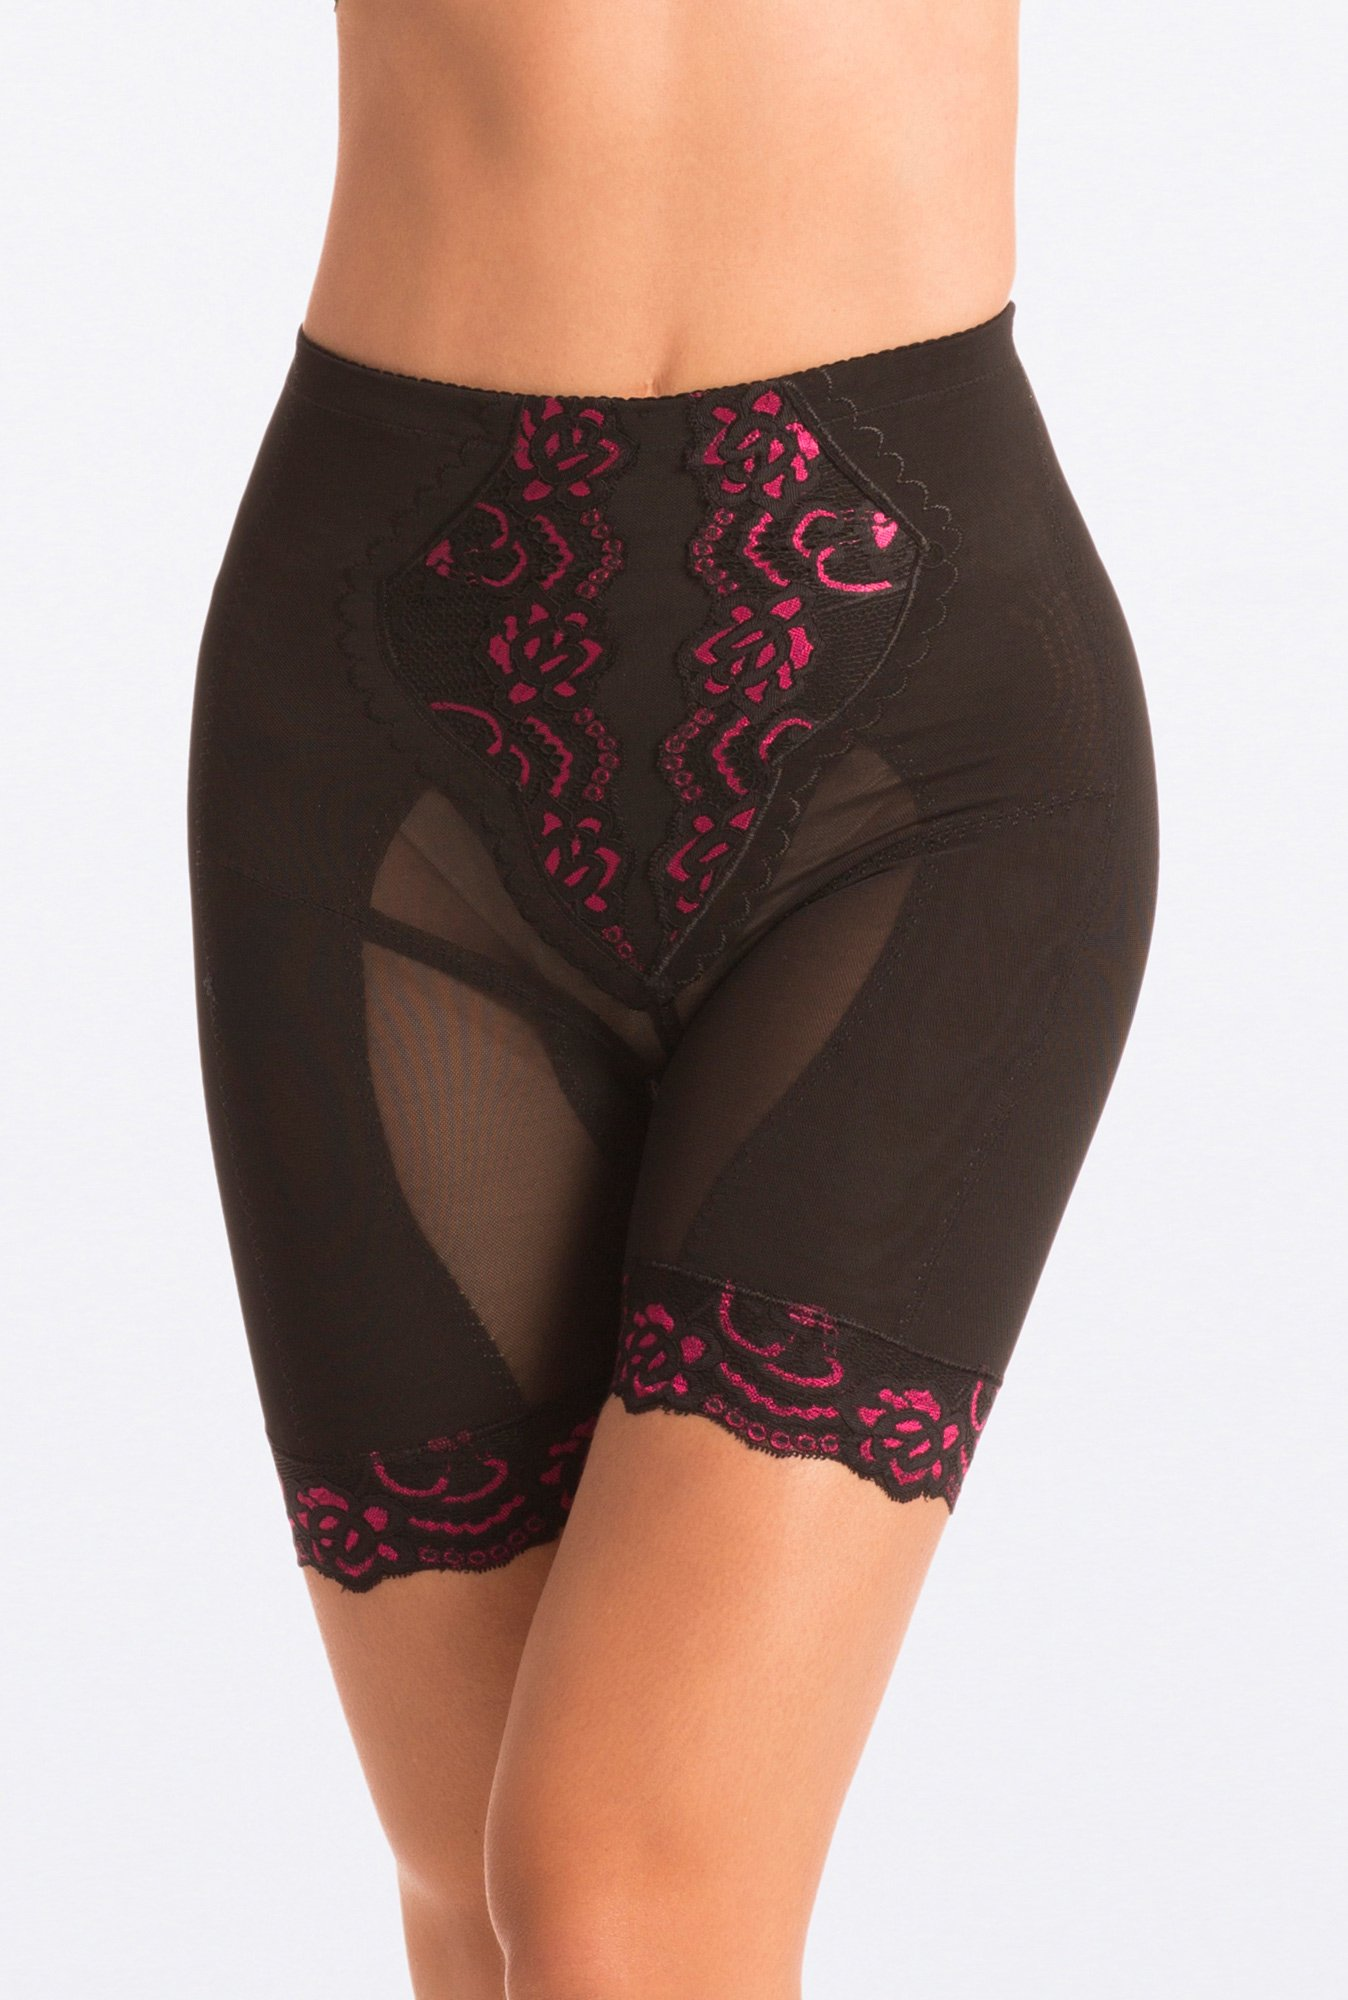 Pretty Secrets Black Pink Lace Slimming Hip & Thigh Shaper